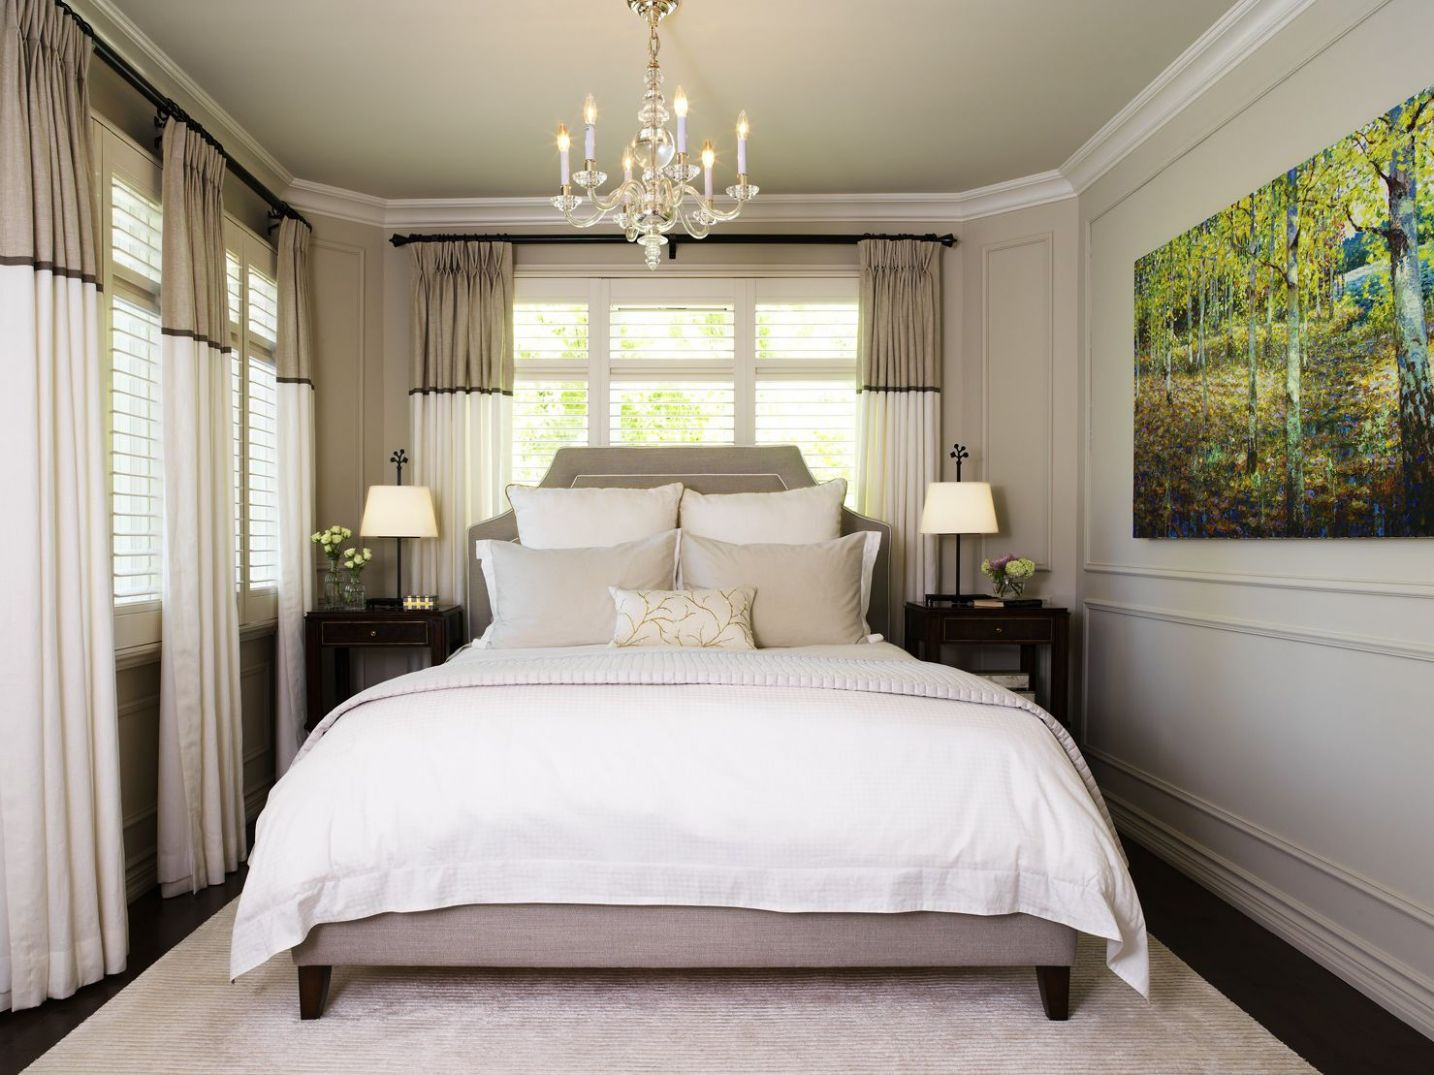 Small Master Bedroom Design Ideas, Tips and Photos - bedroom design ideas 10 x 11